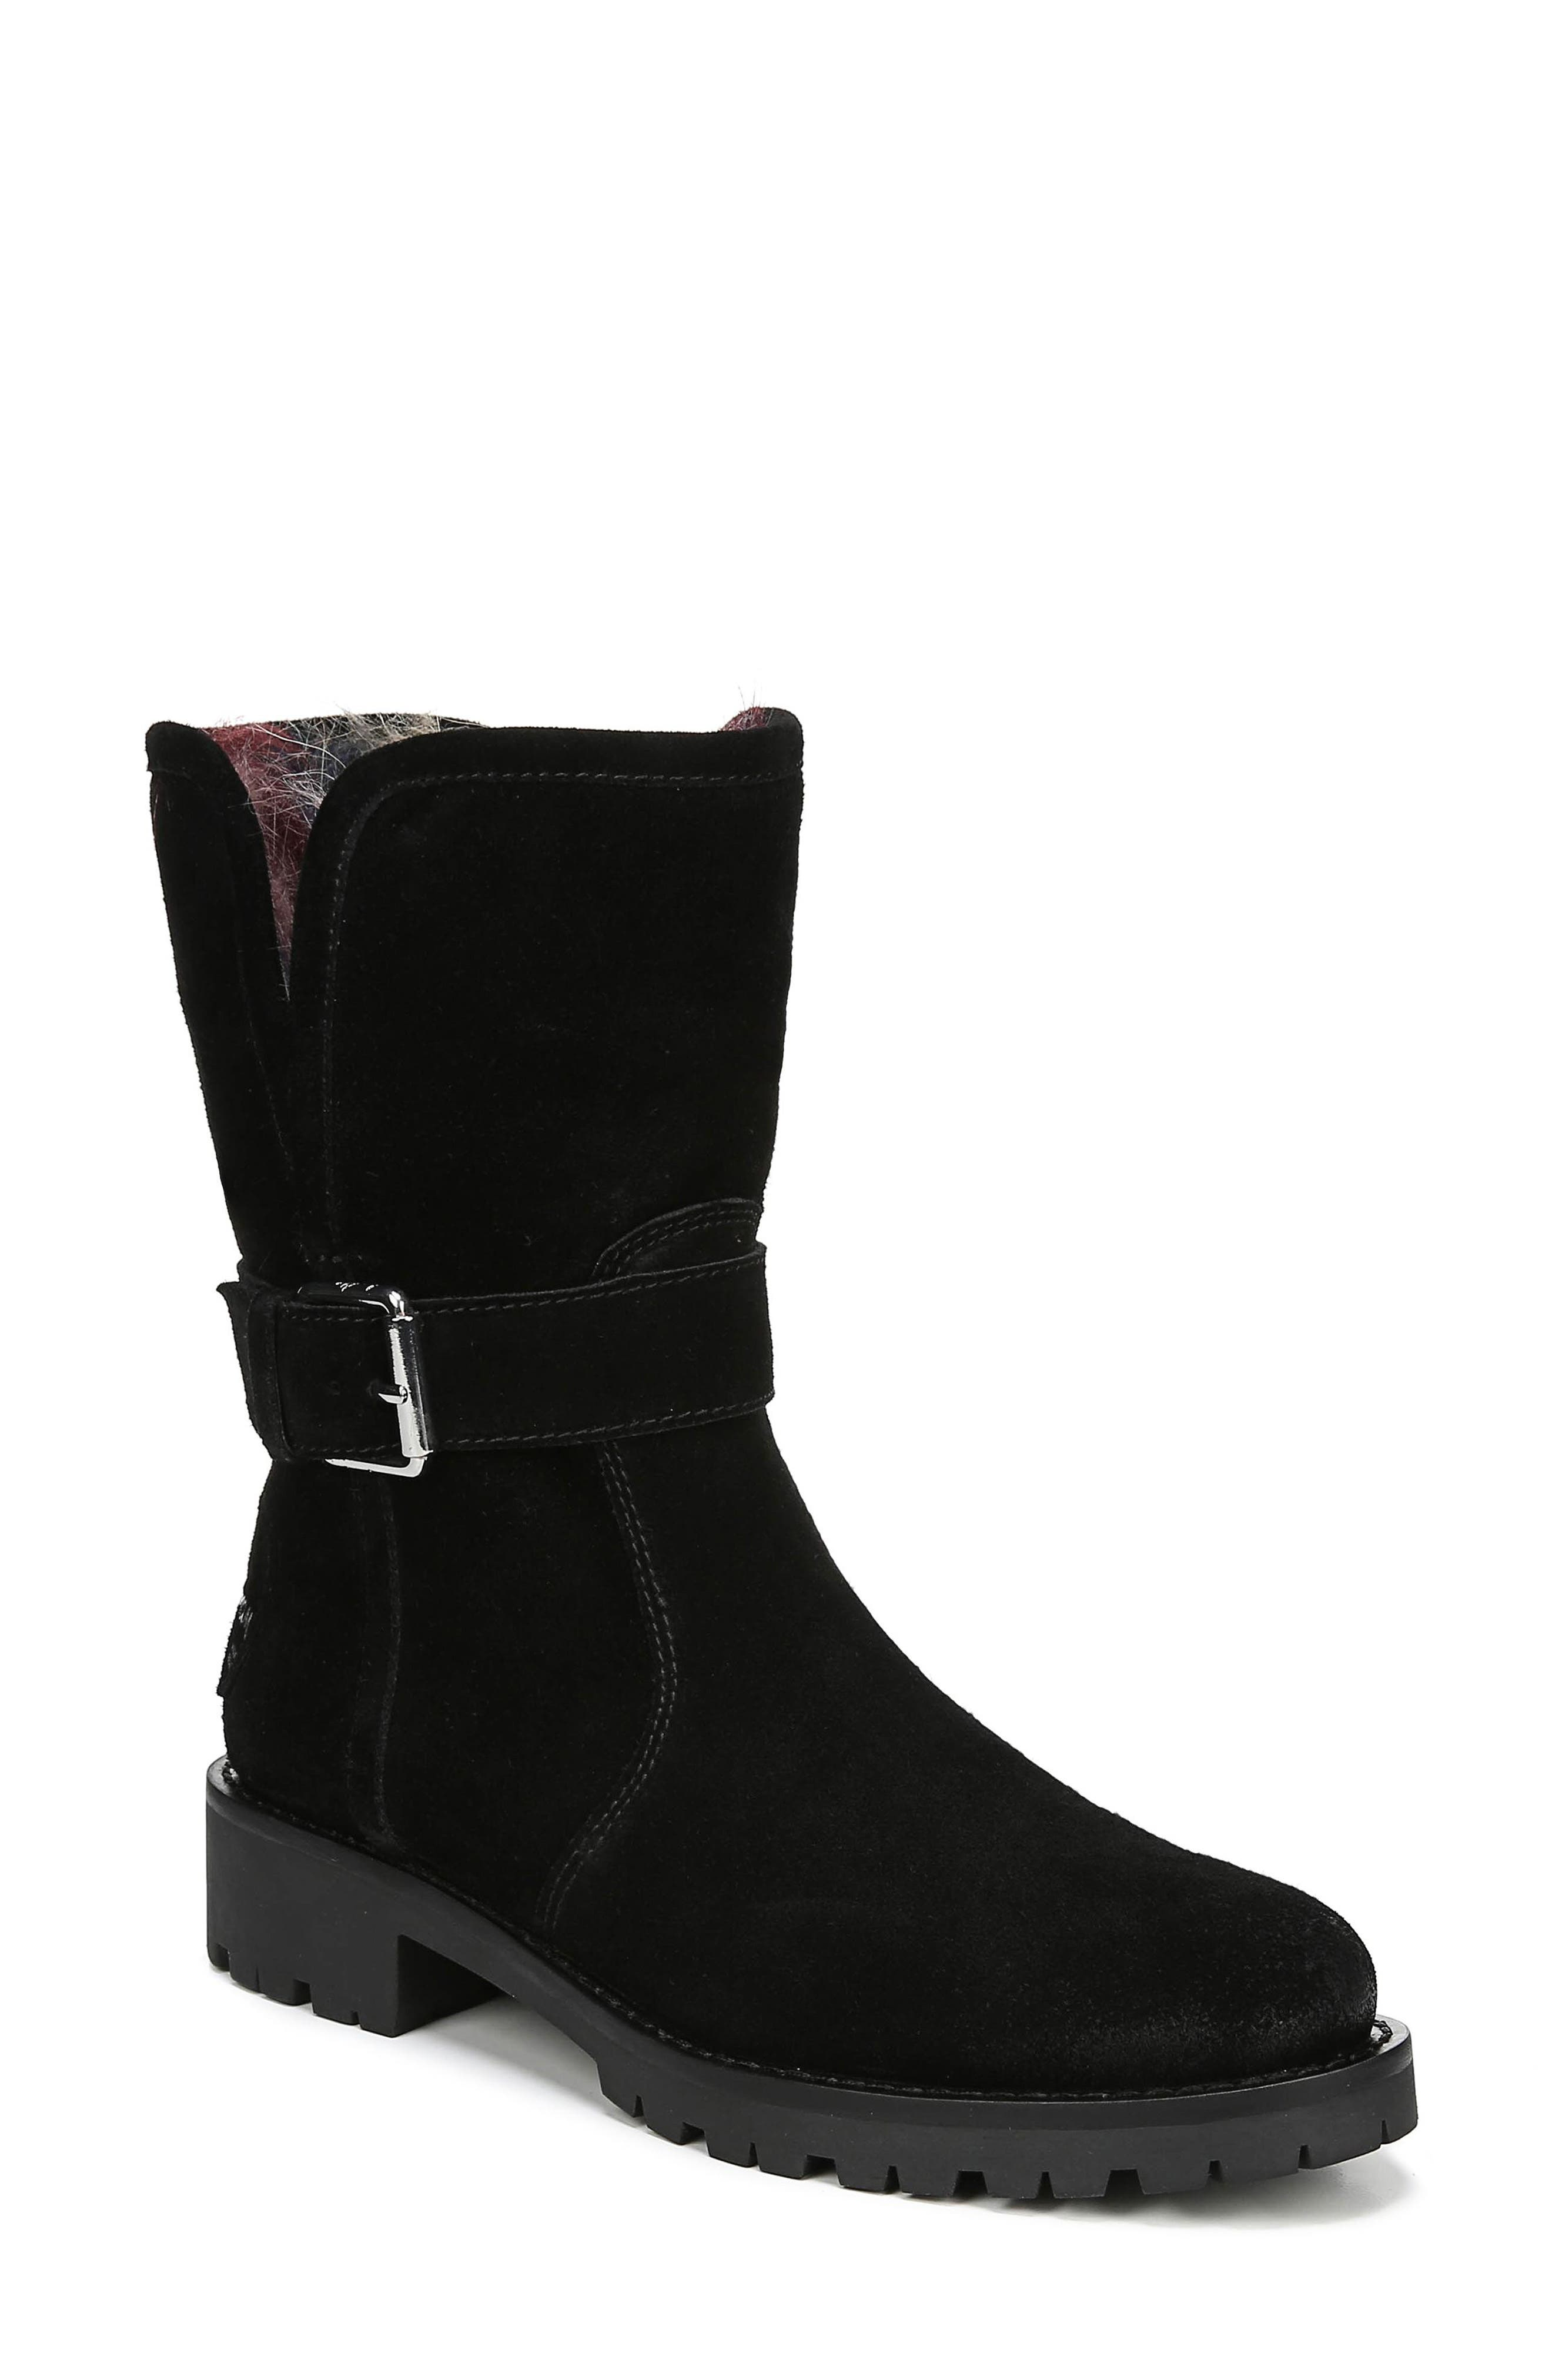 Sam Edelman Jeanie Boot, Black